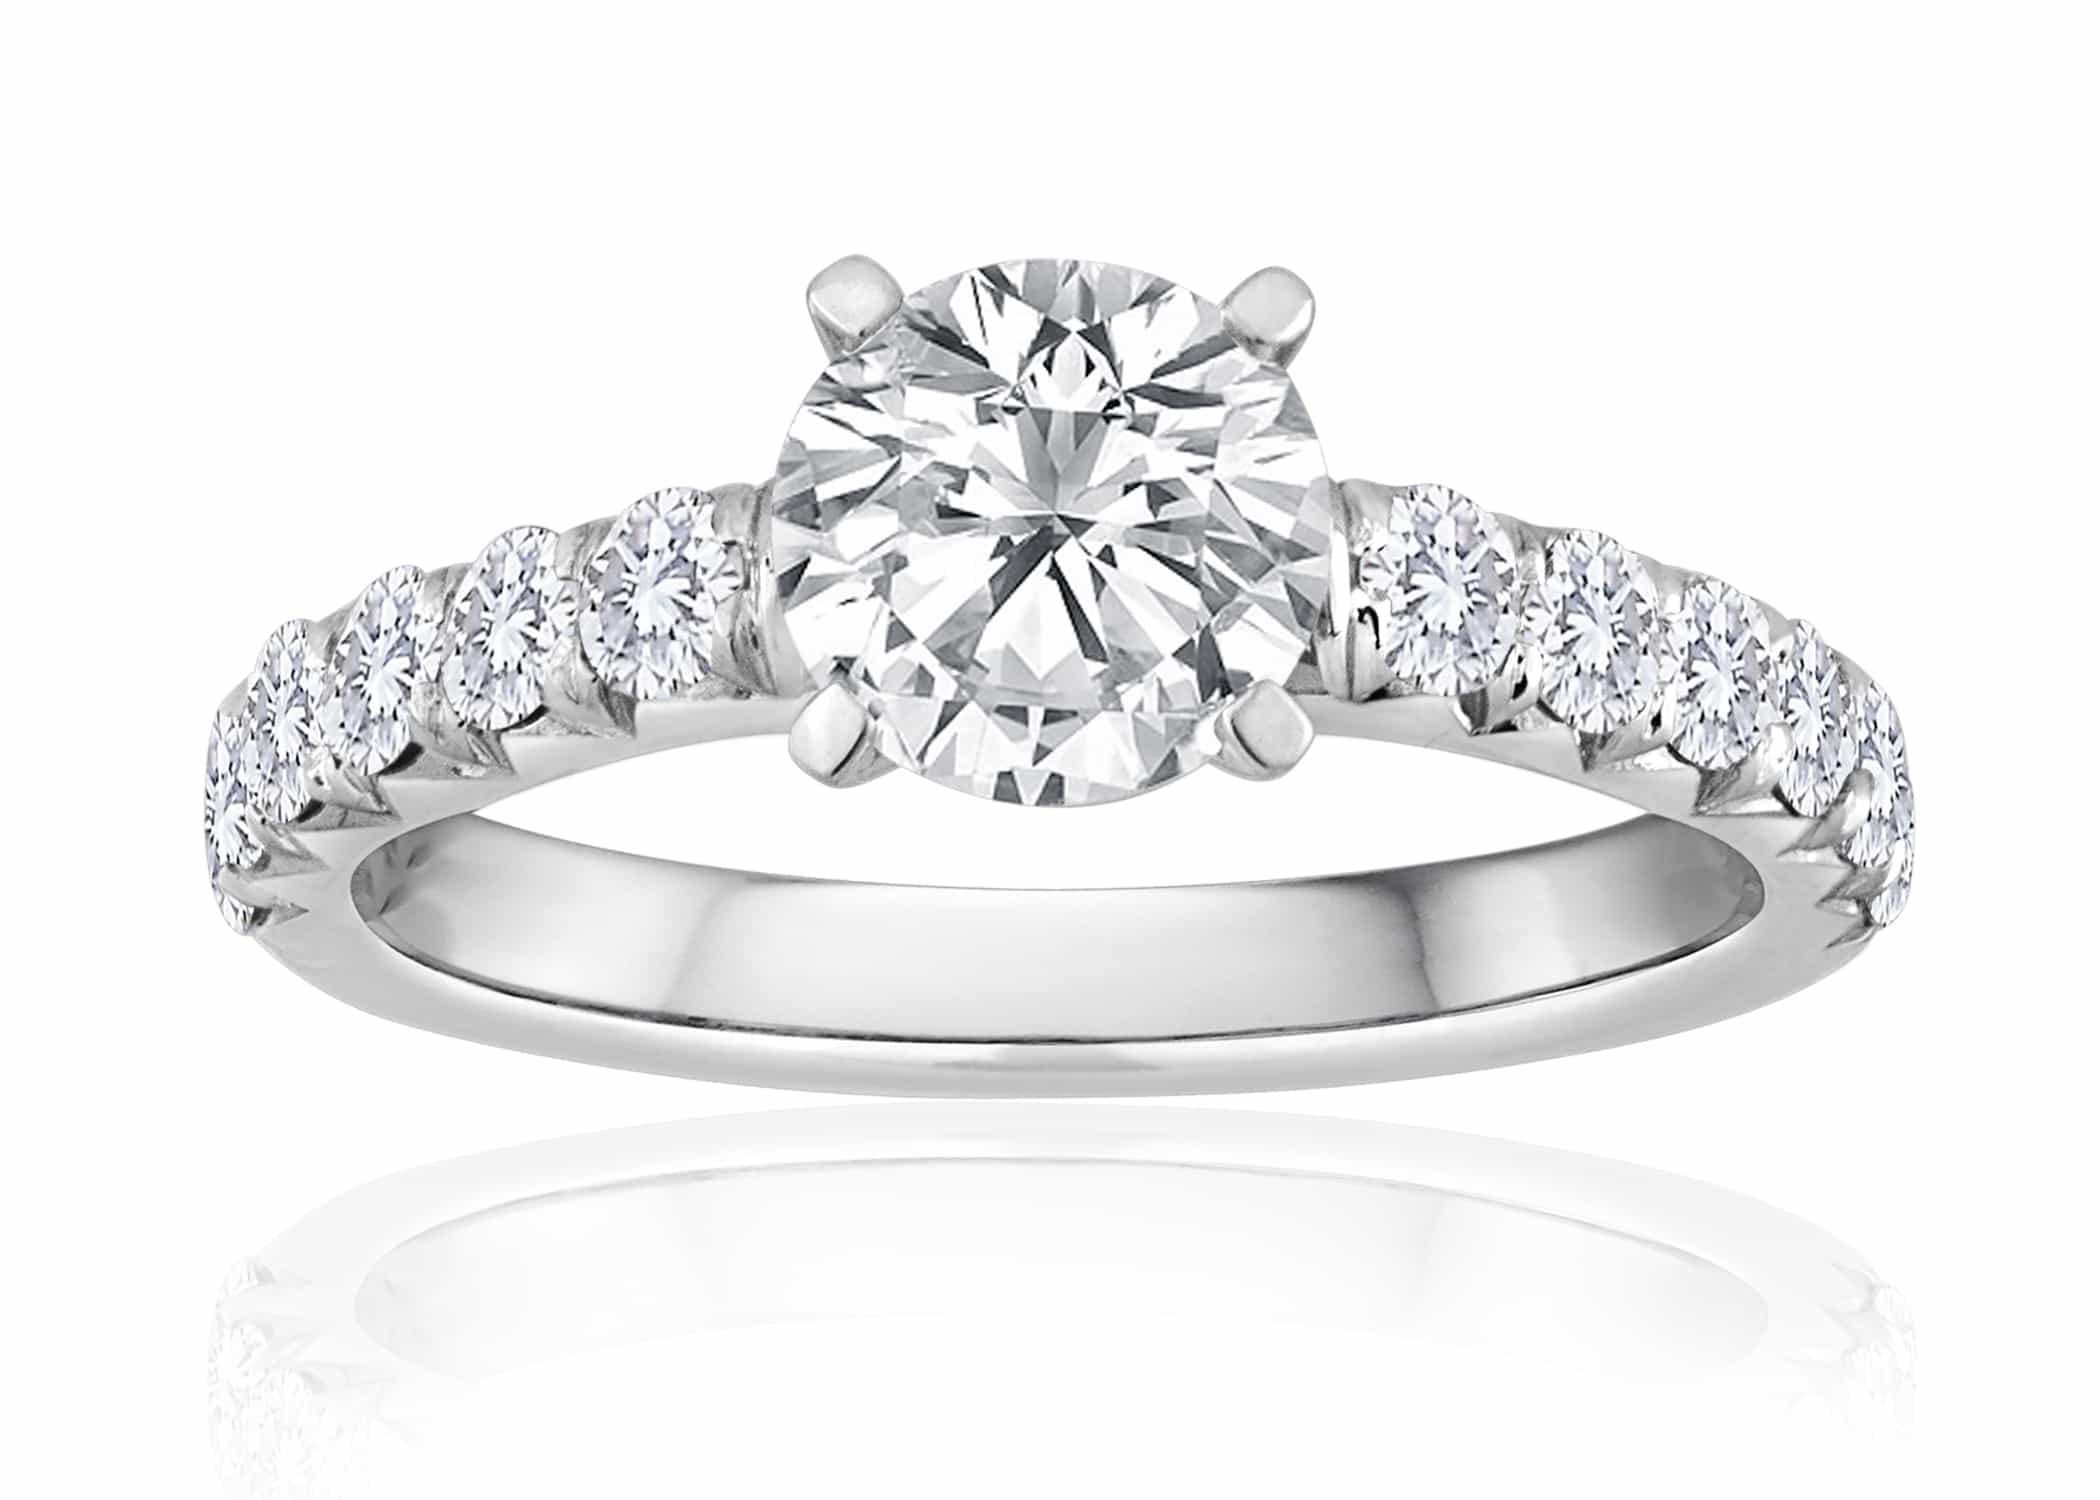 574ac50510388 Imagine Bridal Rings - Herkner Jewelers Grand Rapids Sellers of ...